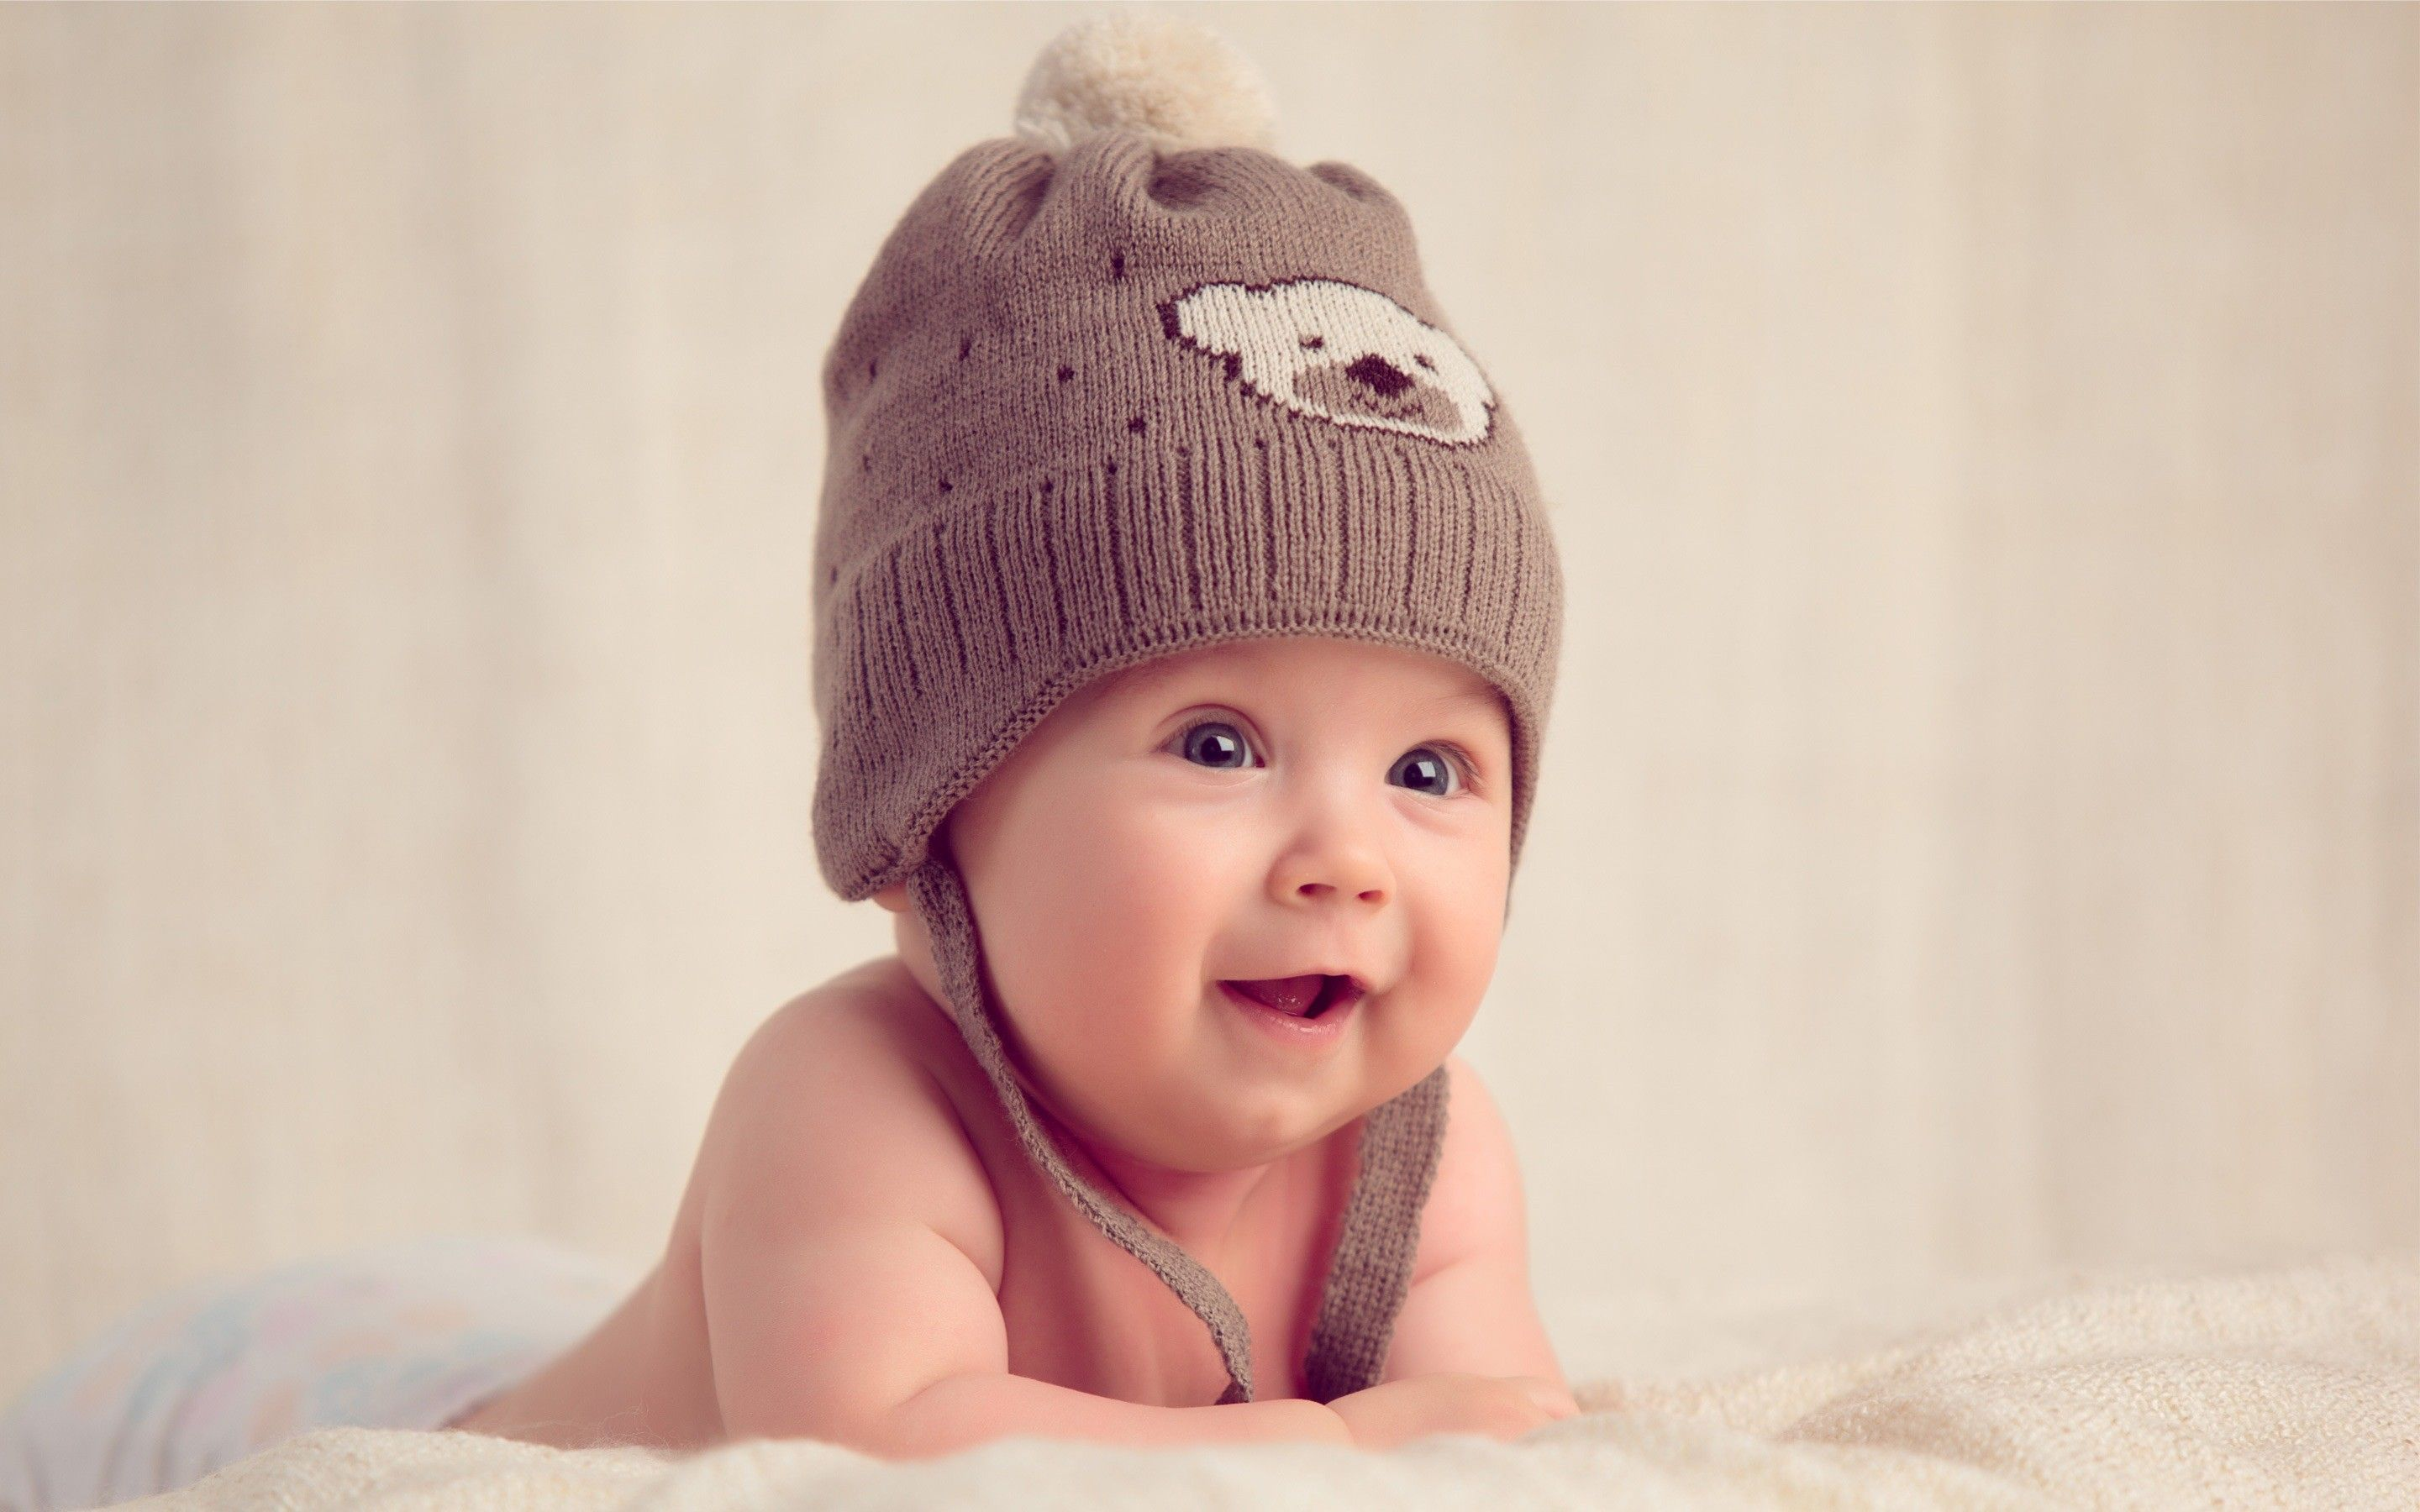 Cute Baby Hd Wallpapers Top Free Cute Baby Hd Backgrounds Wallpaperaccess